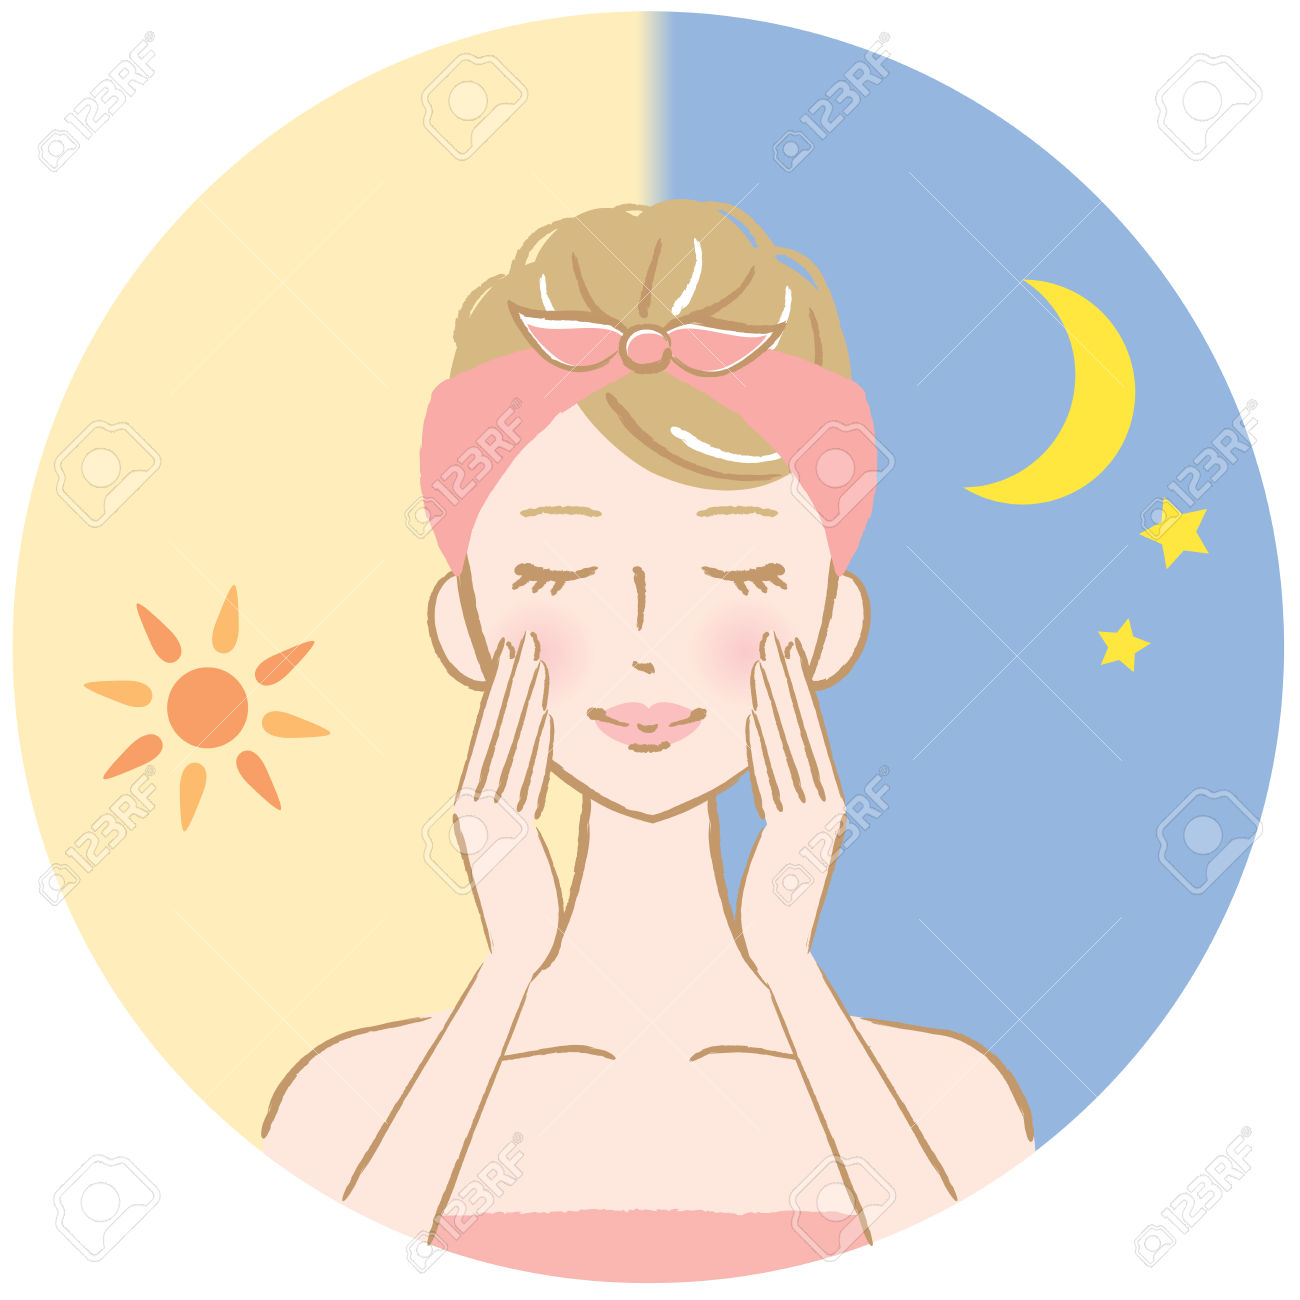 31,244 Skin Care Stock Vector Illustration And Royalty Free Skin.